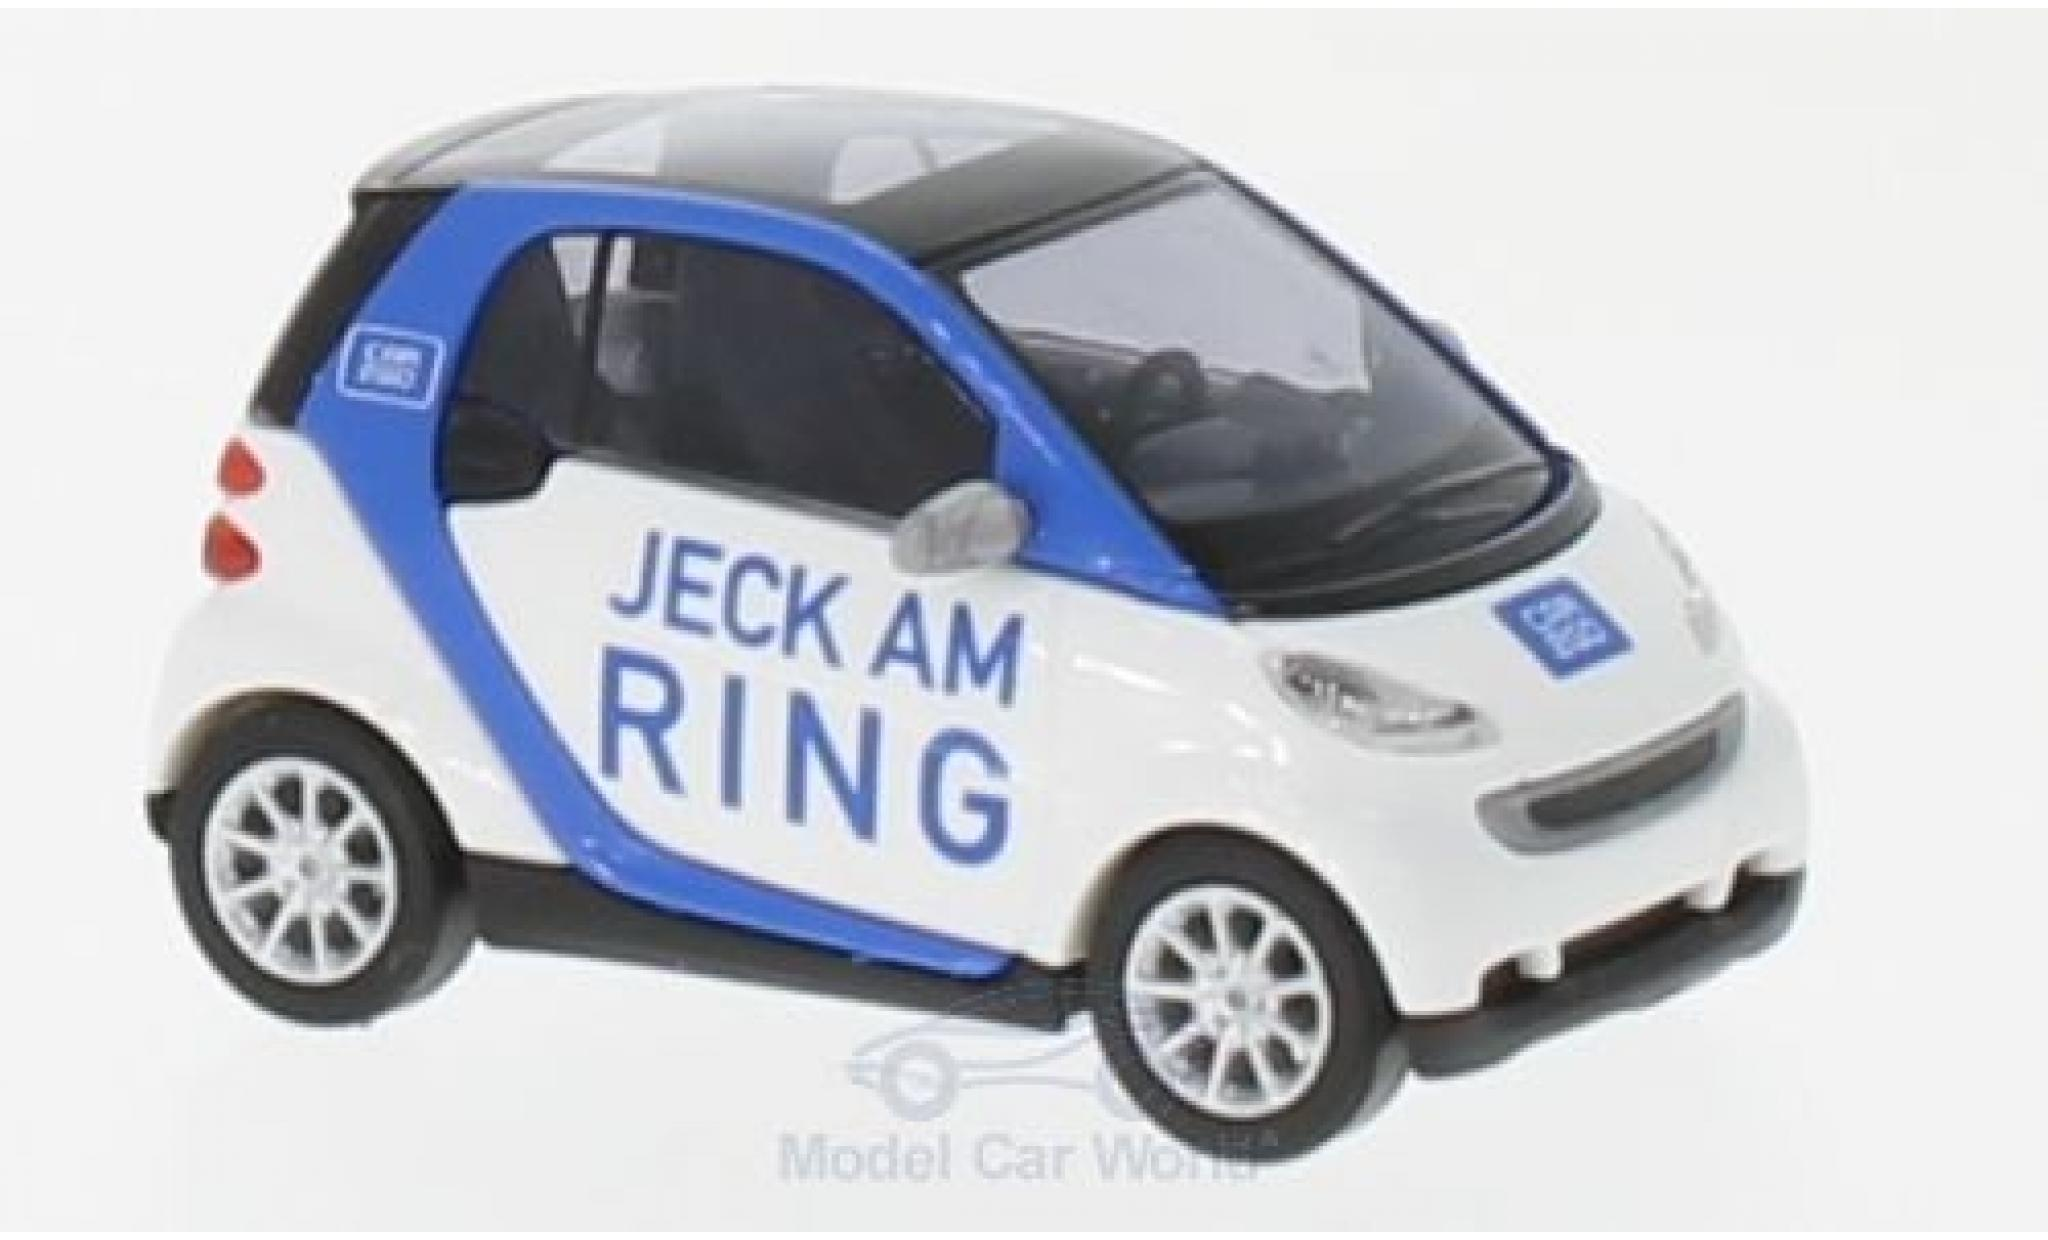 Smart ForTwo 1/87 Busch Fortwo Jeck am Ring 2007 Car2go